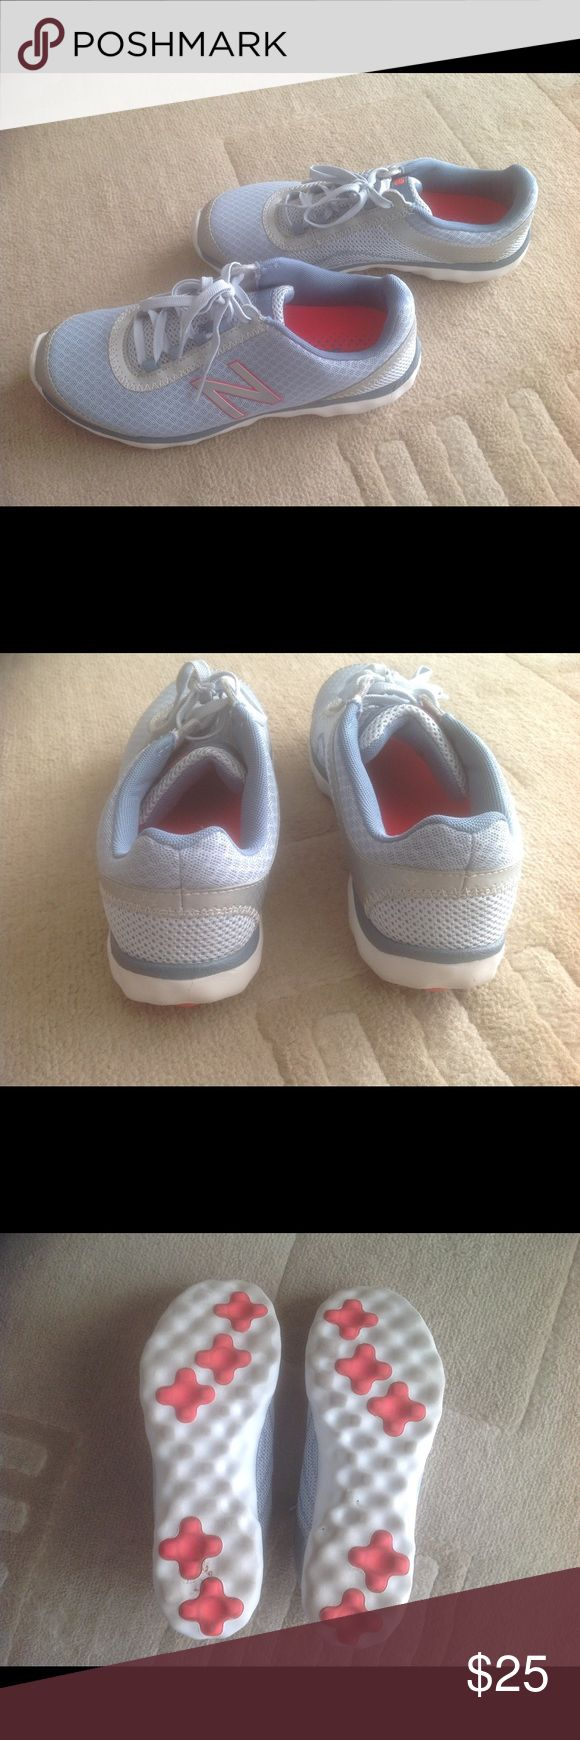 New Balance 695 v2 Lightweight Walking Shoe Like New.  Light Blue, Silver and Pink detail. Only worn once.  WOB New Balance Shoes Sneakers